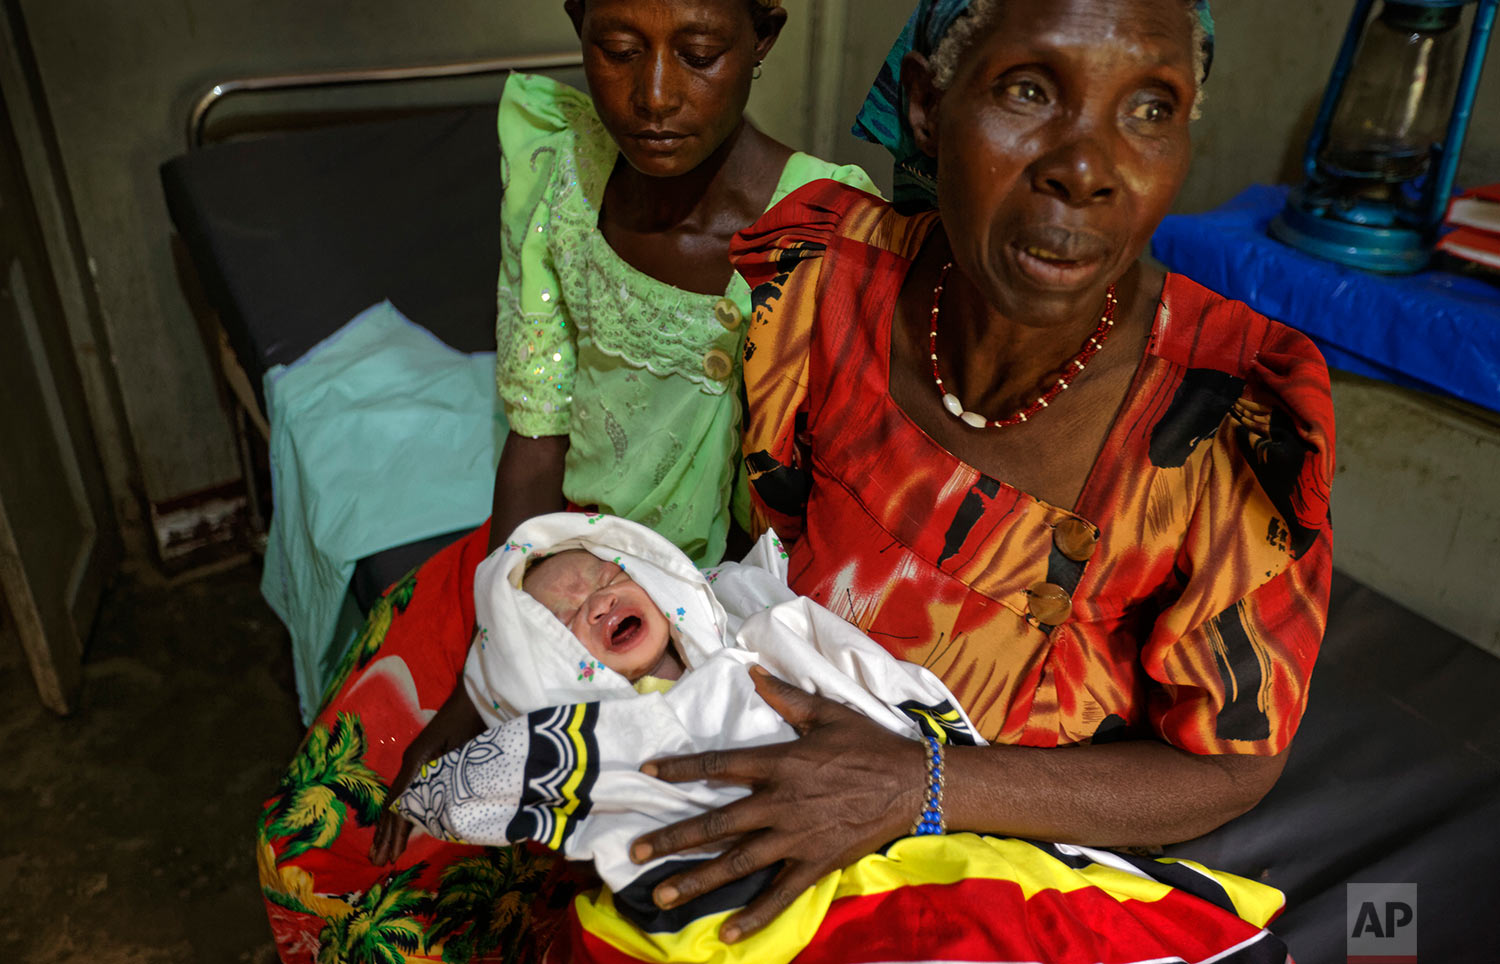 In this Wednesday, May 31, 2017 photo, grandmother Mauda Byarugaba, right, holds her grandson Ben Ssekalunga, who was passed to her by a midwife moments after his birth, as she sits next to an unidentified friend in the maternity room of a health clinic with no running water in Lwamaggwa, near Masaka, in Uganda. A census worker recorded Ben's details in a birth register shortly after delivery. (AP Photo/Ben Curtis)